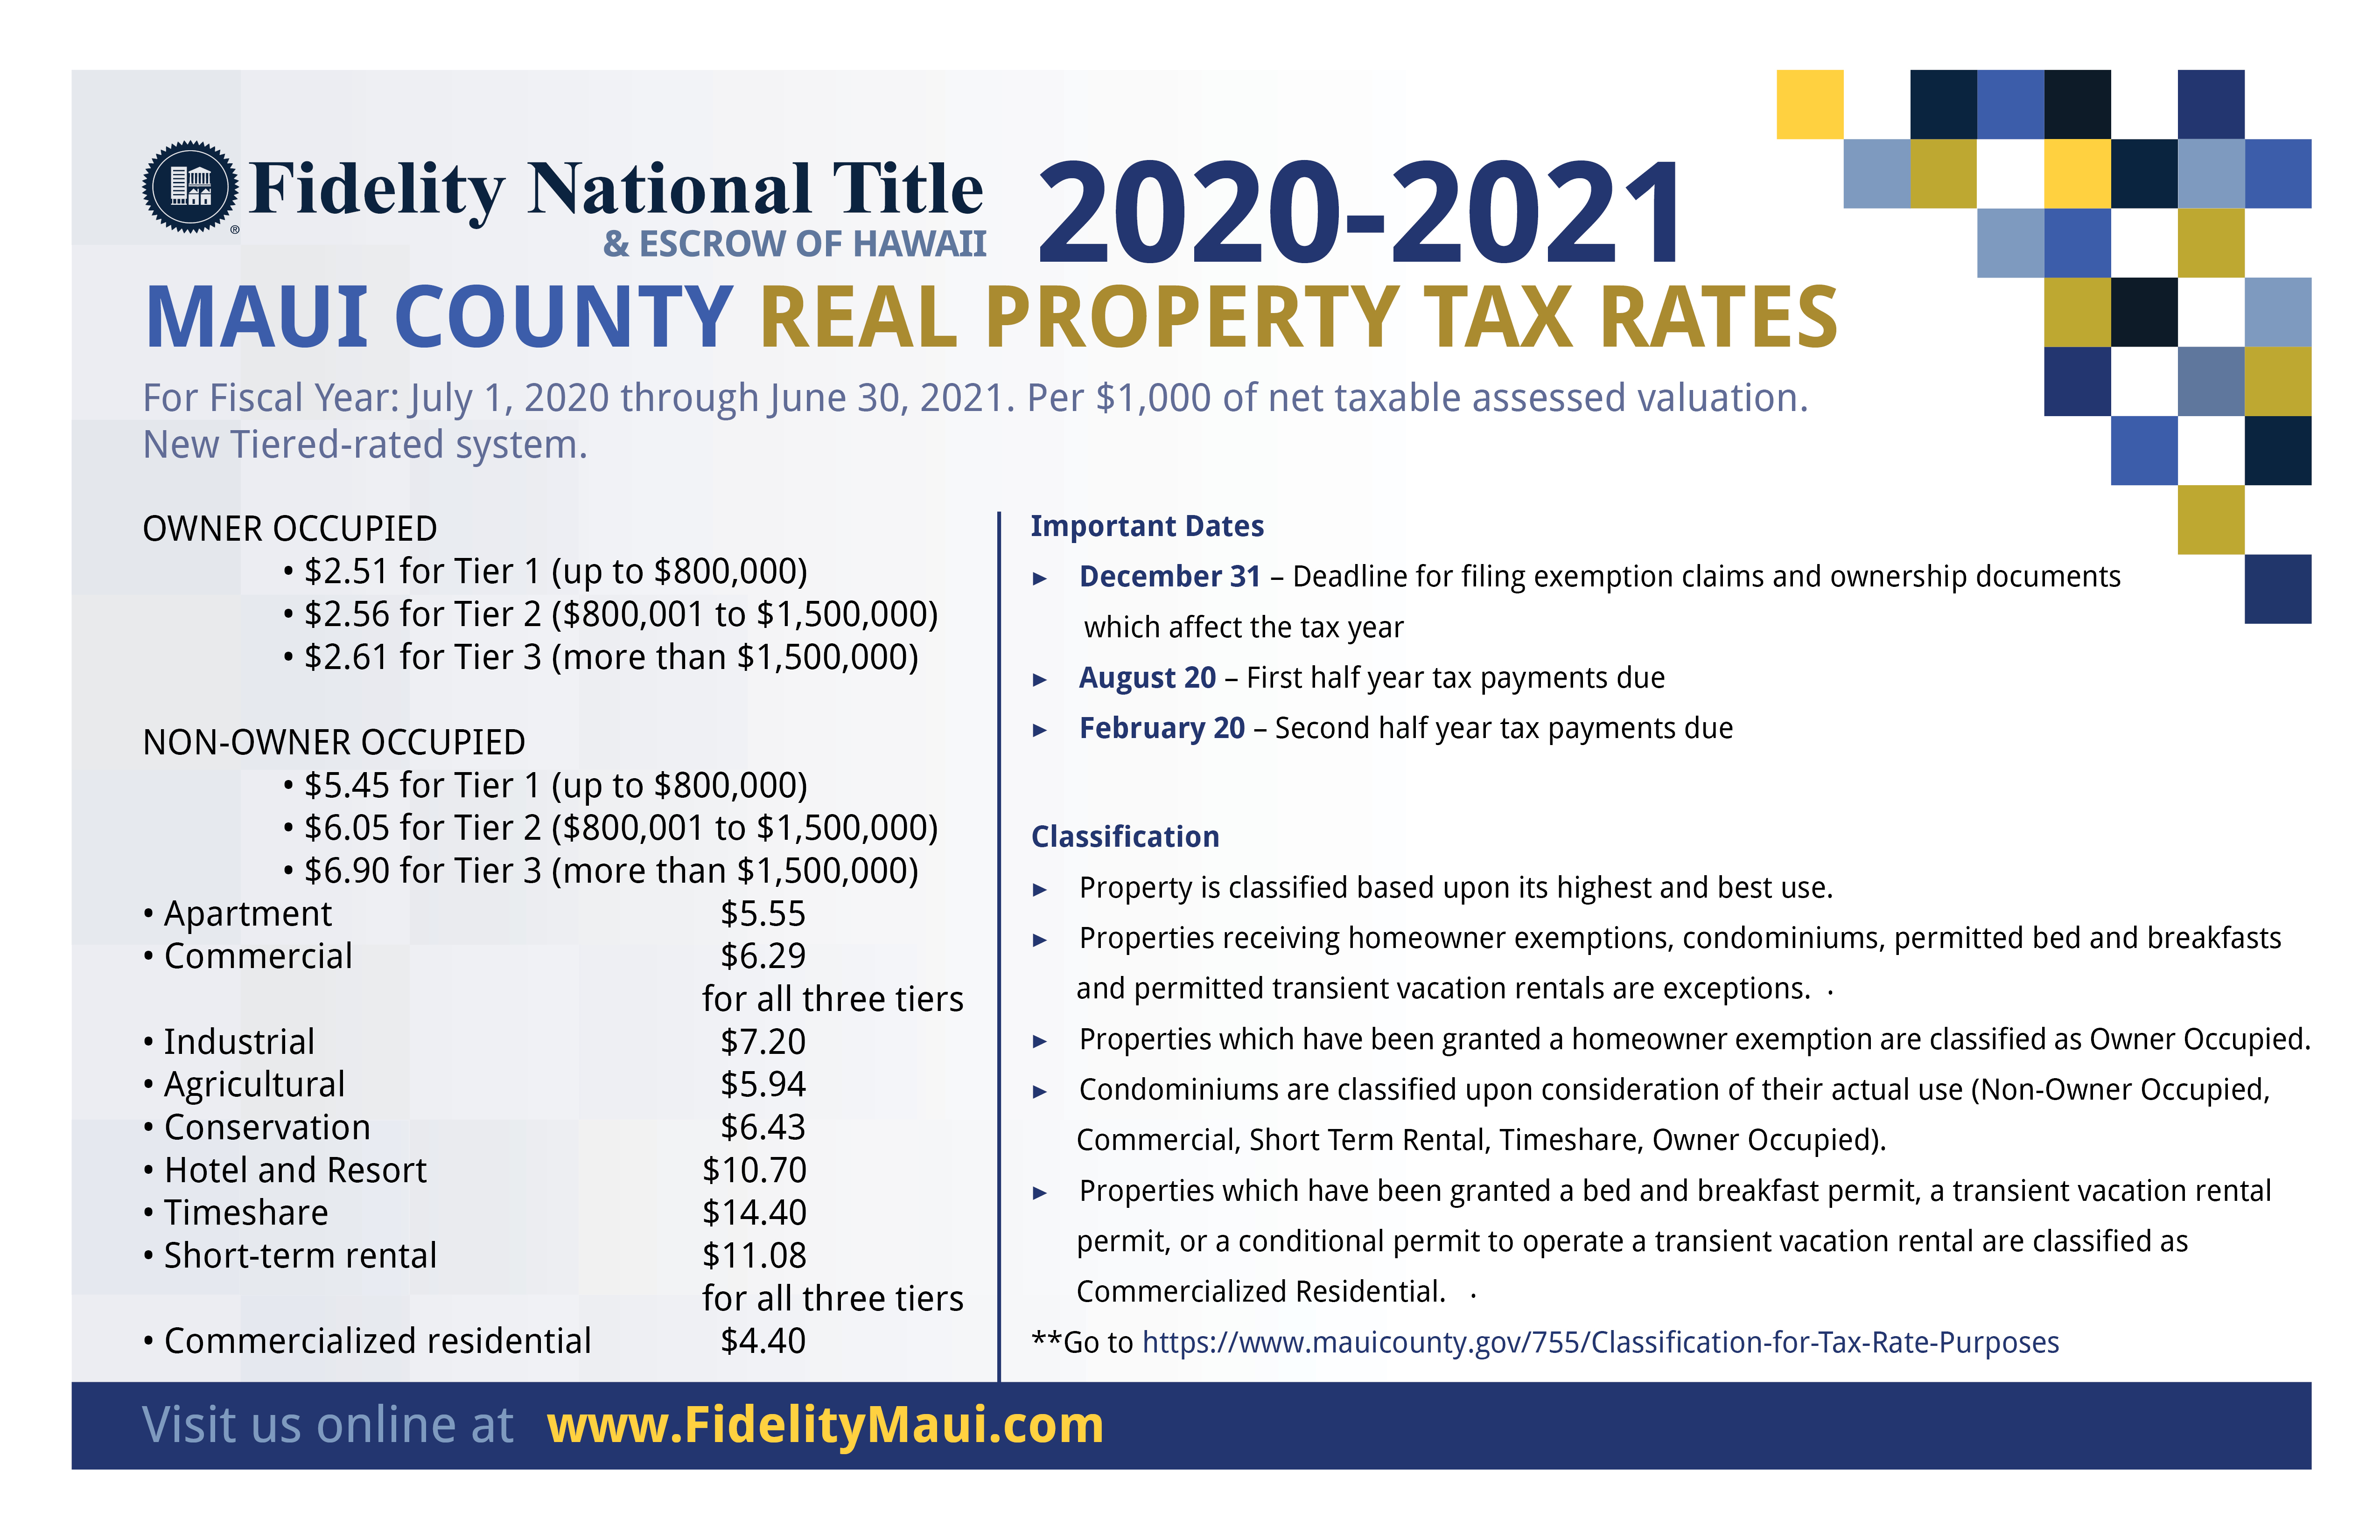 Real Property Taxes 2020-2021